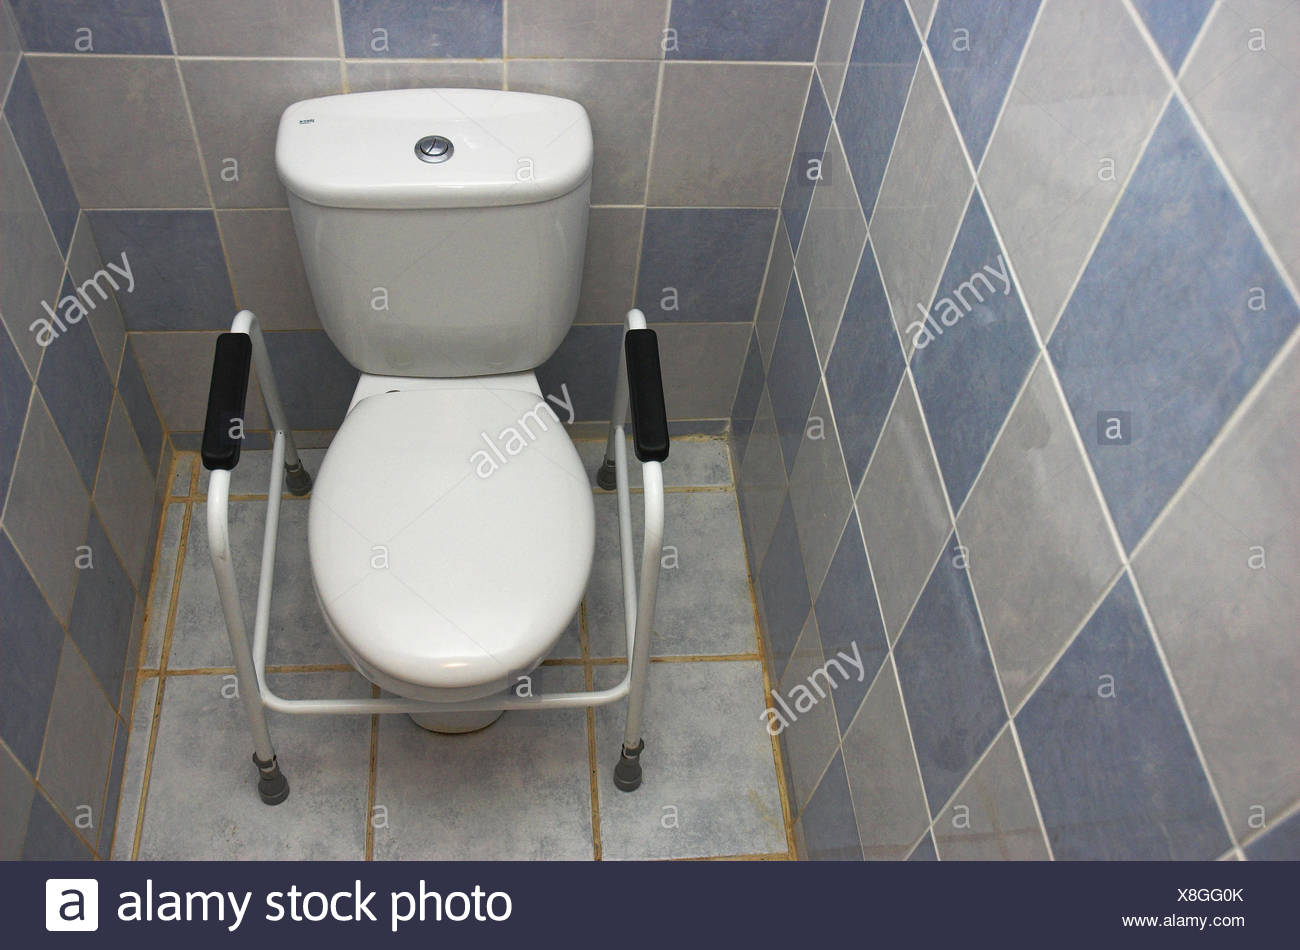 Disability aid for wc toilet Stock Photo: 280646931 - Alamy